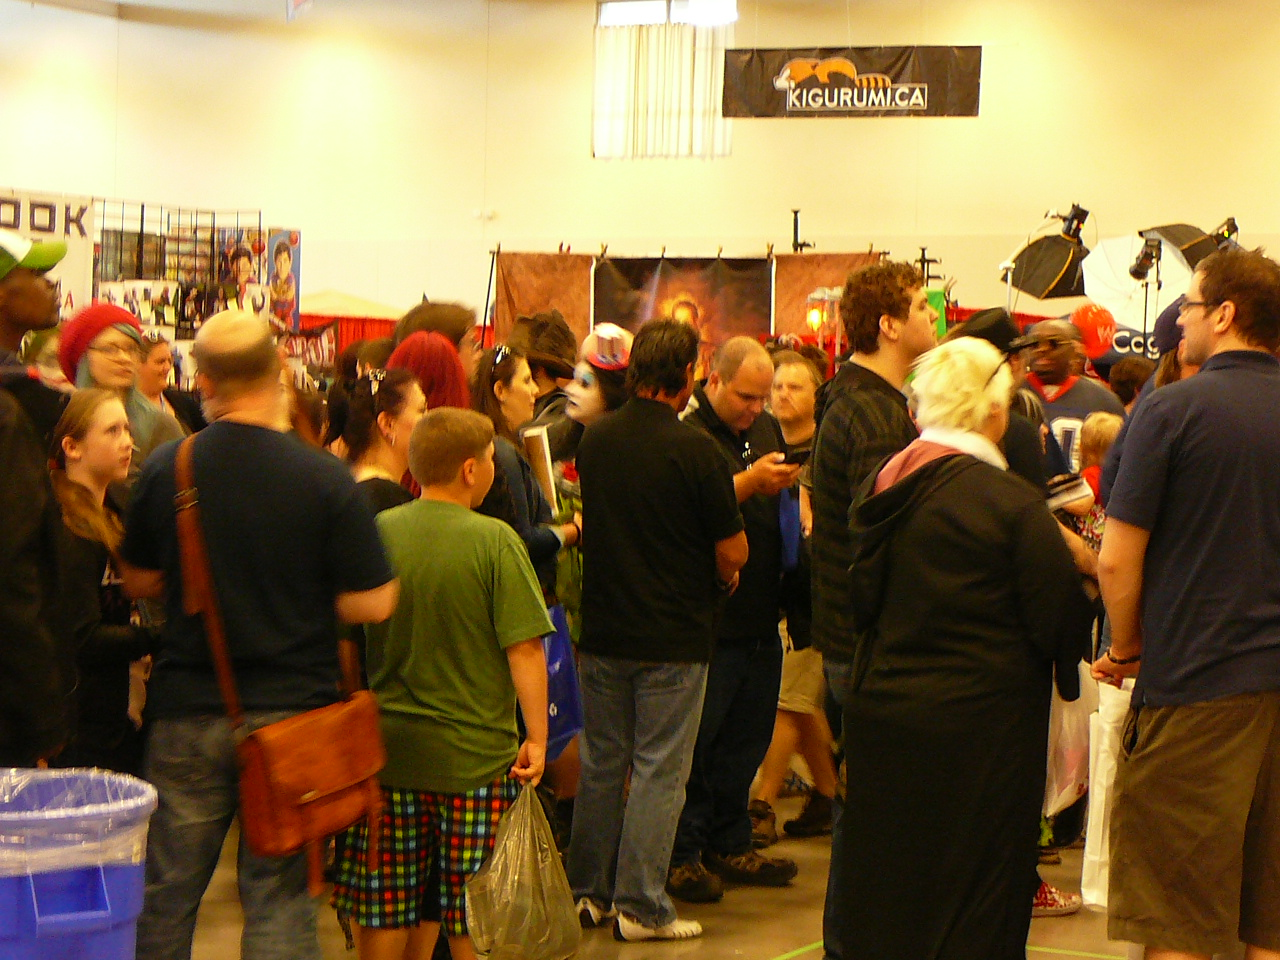 Fans wait in lines for celebrity autographs at Niagara Falls Comic Con.